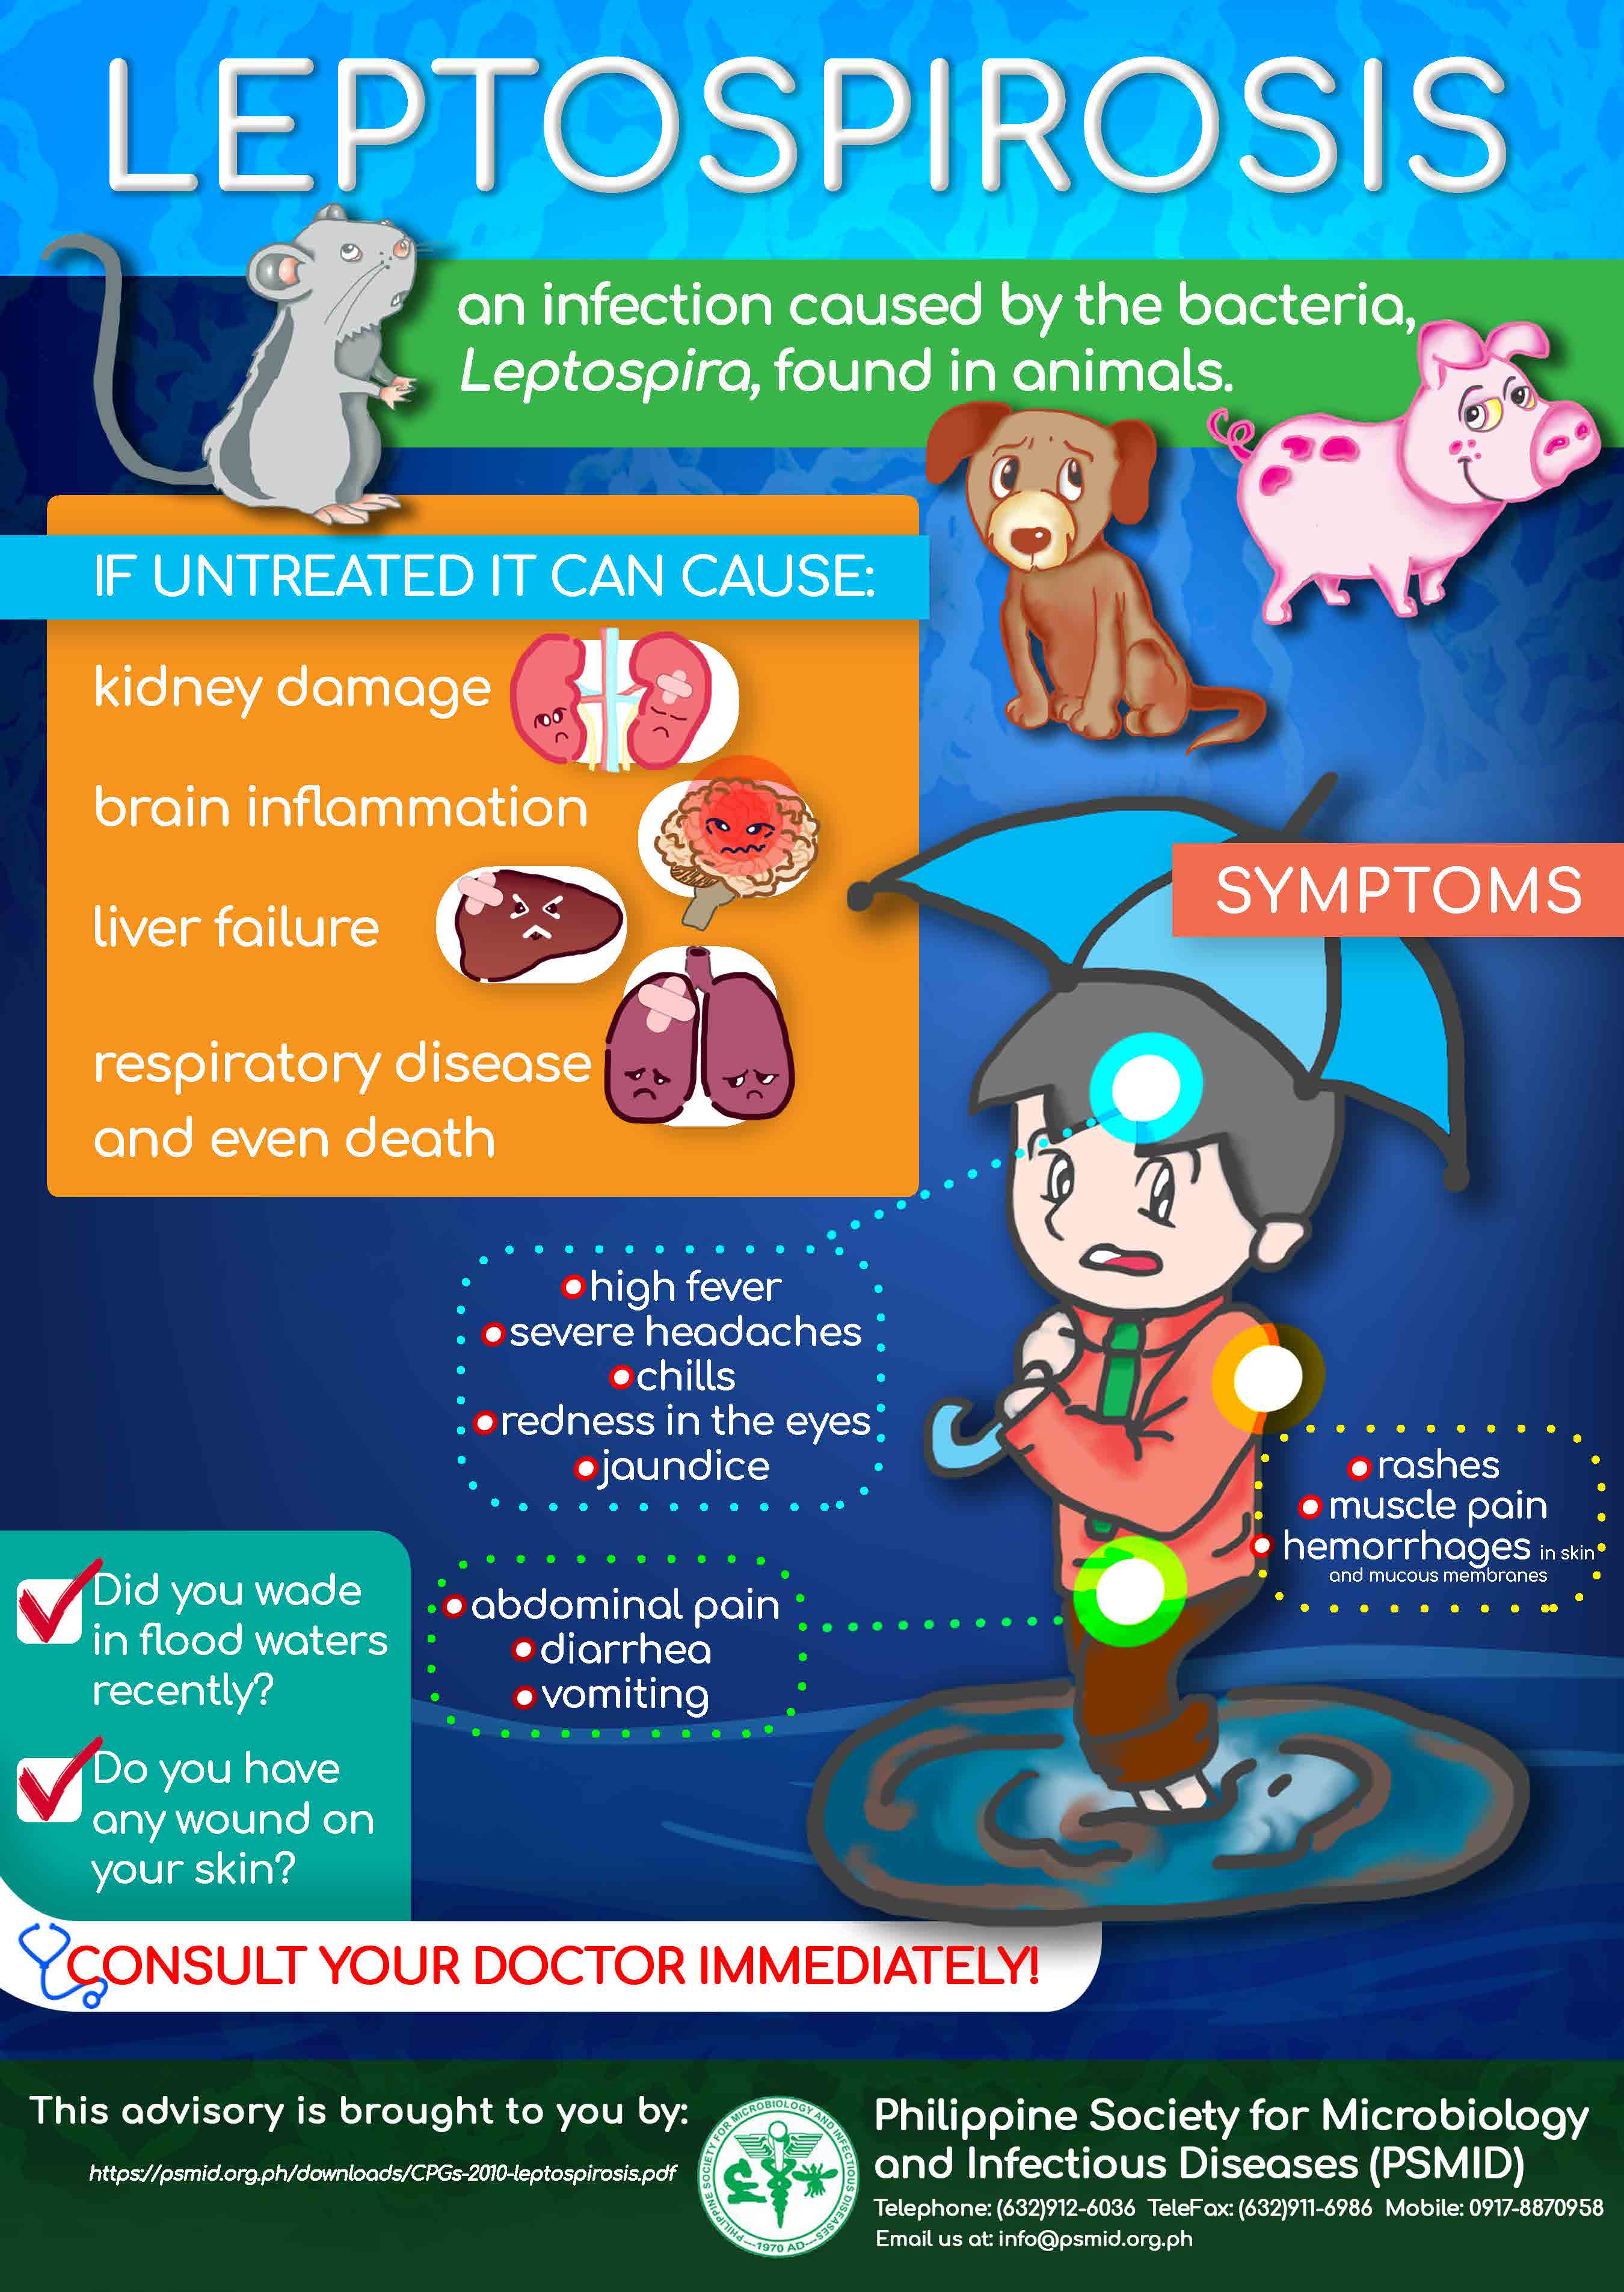 LEPTOSPIROSIS INFOGRAPHIC 2